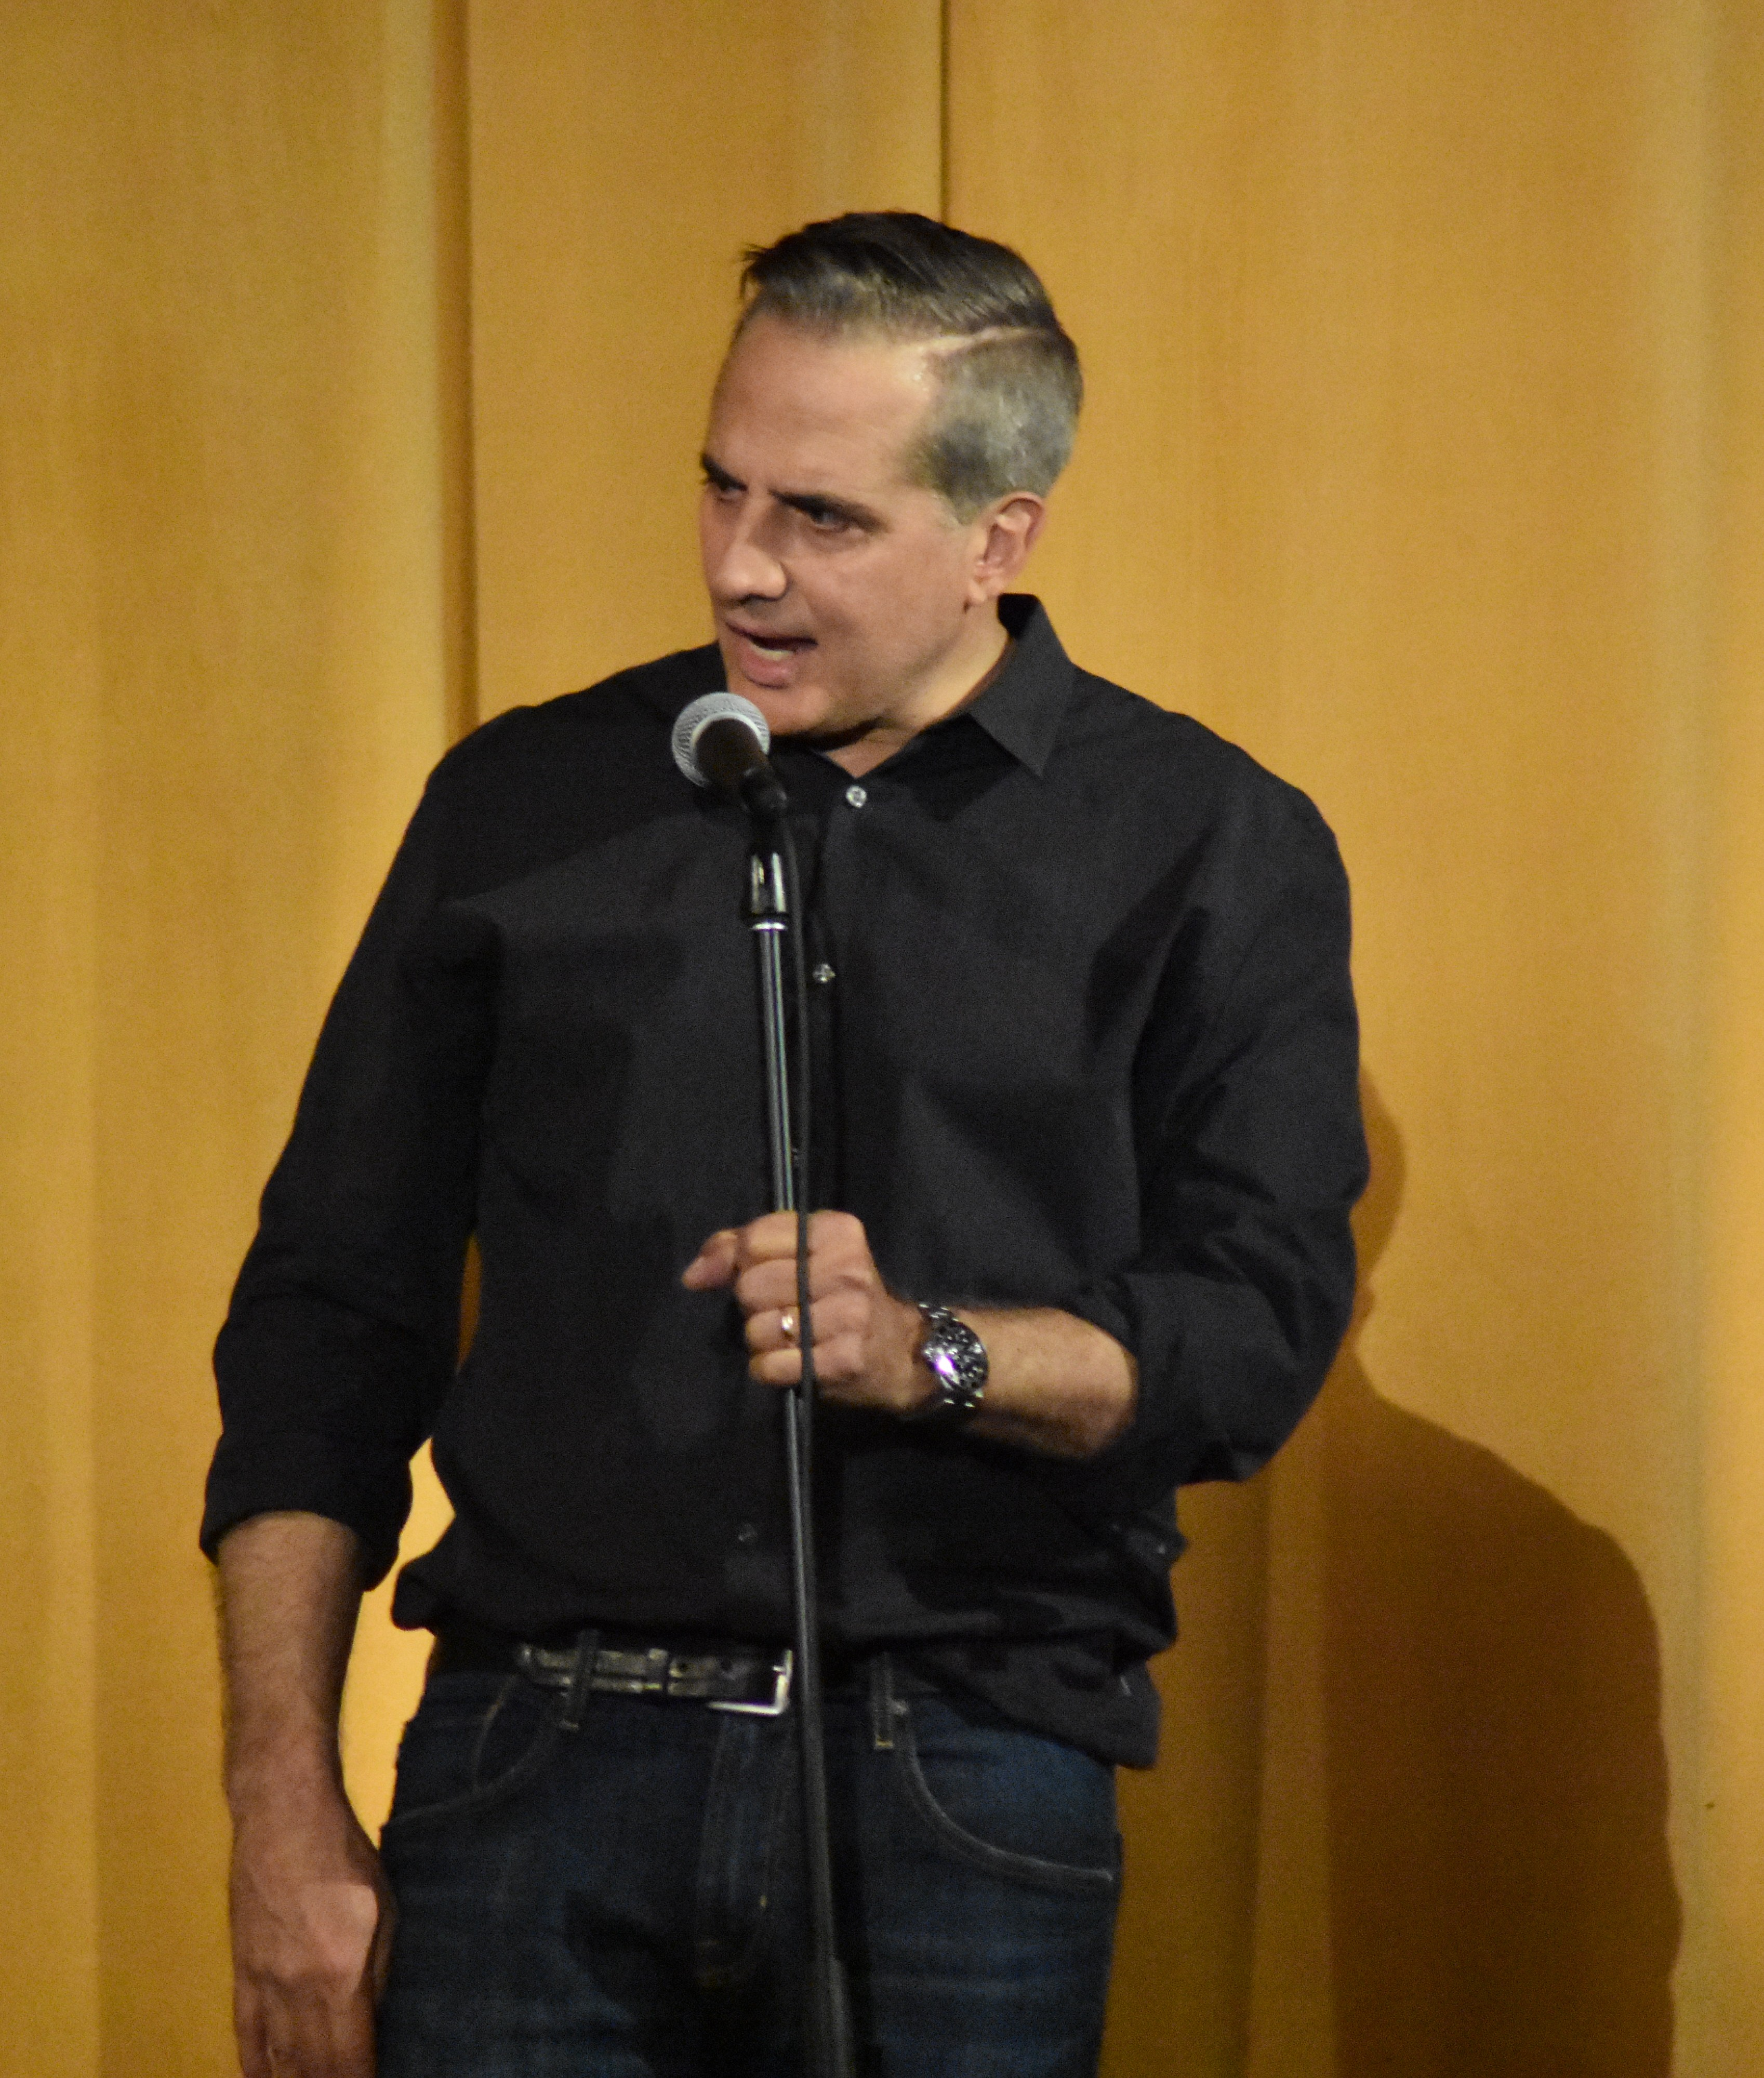 Avatar of Nick DiPaolo